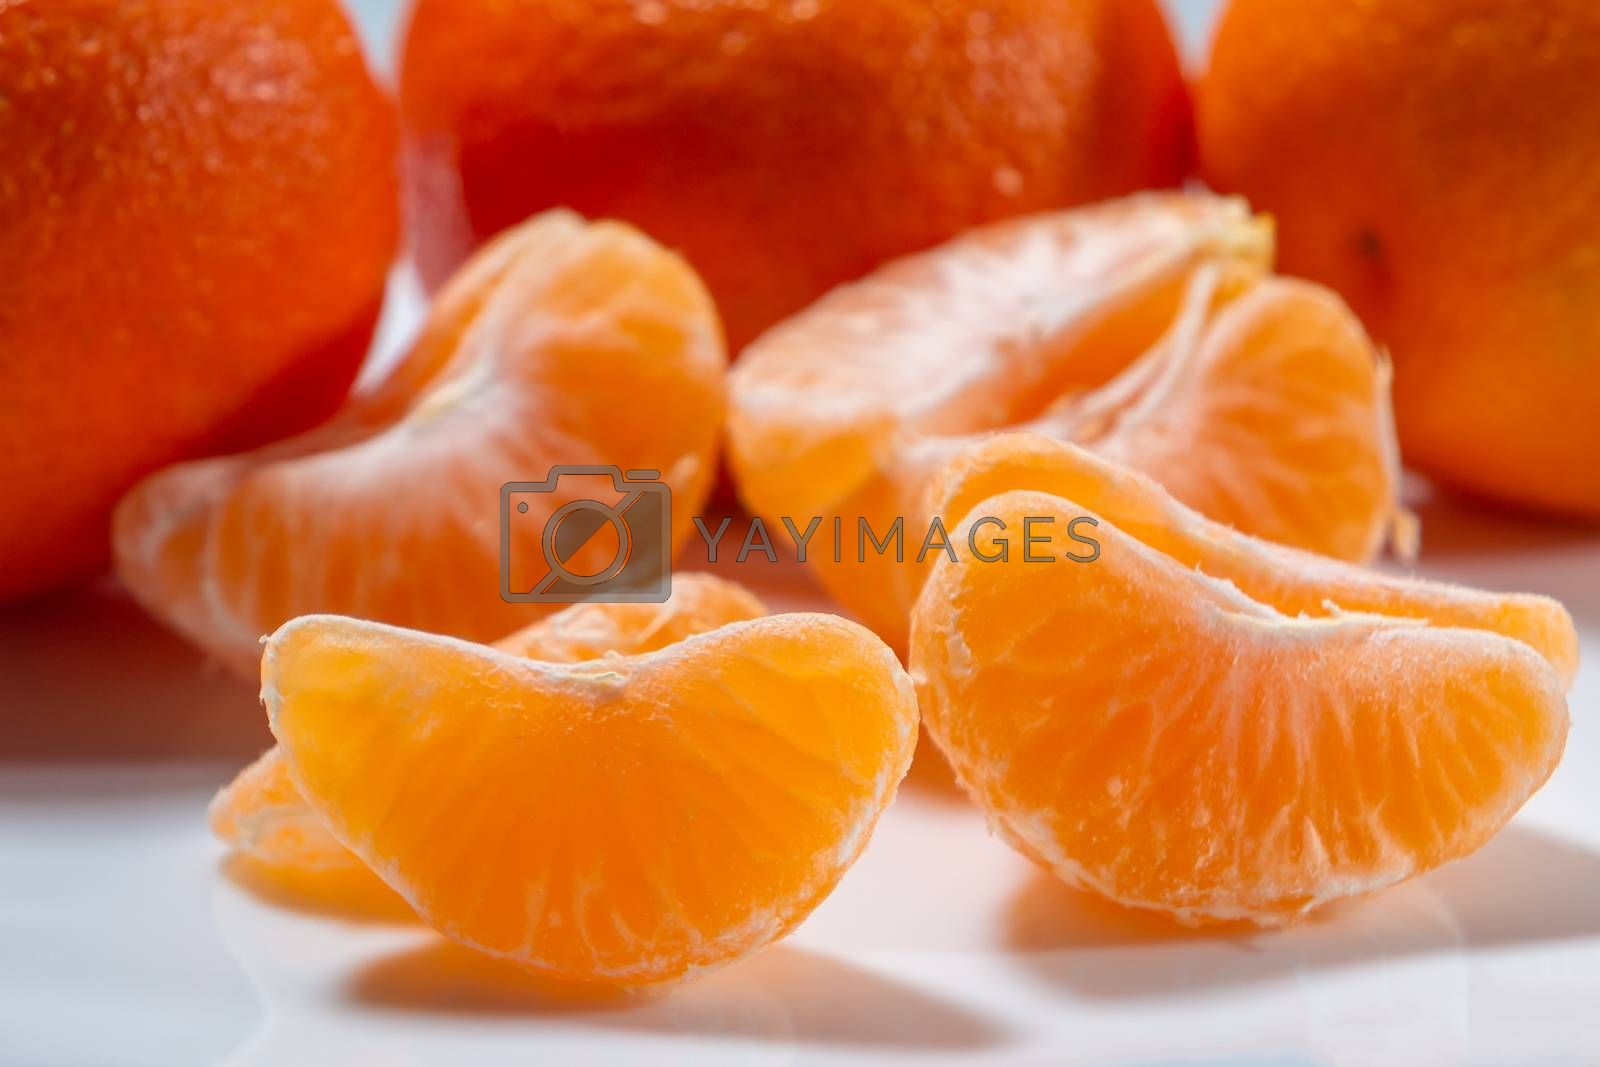 Several whole and peeled ripe tangerines on a white plate by galsand